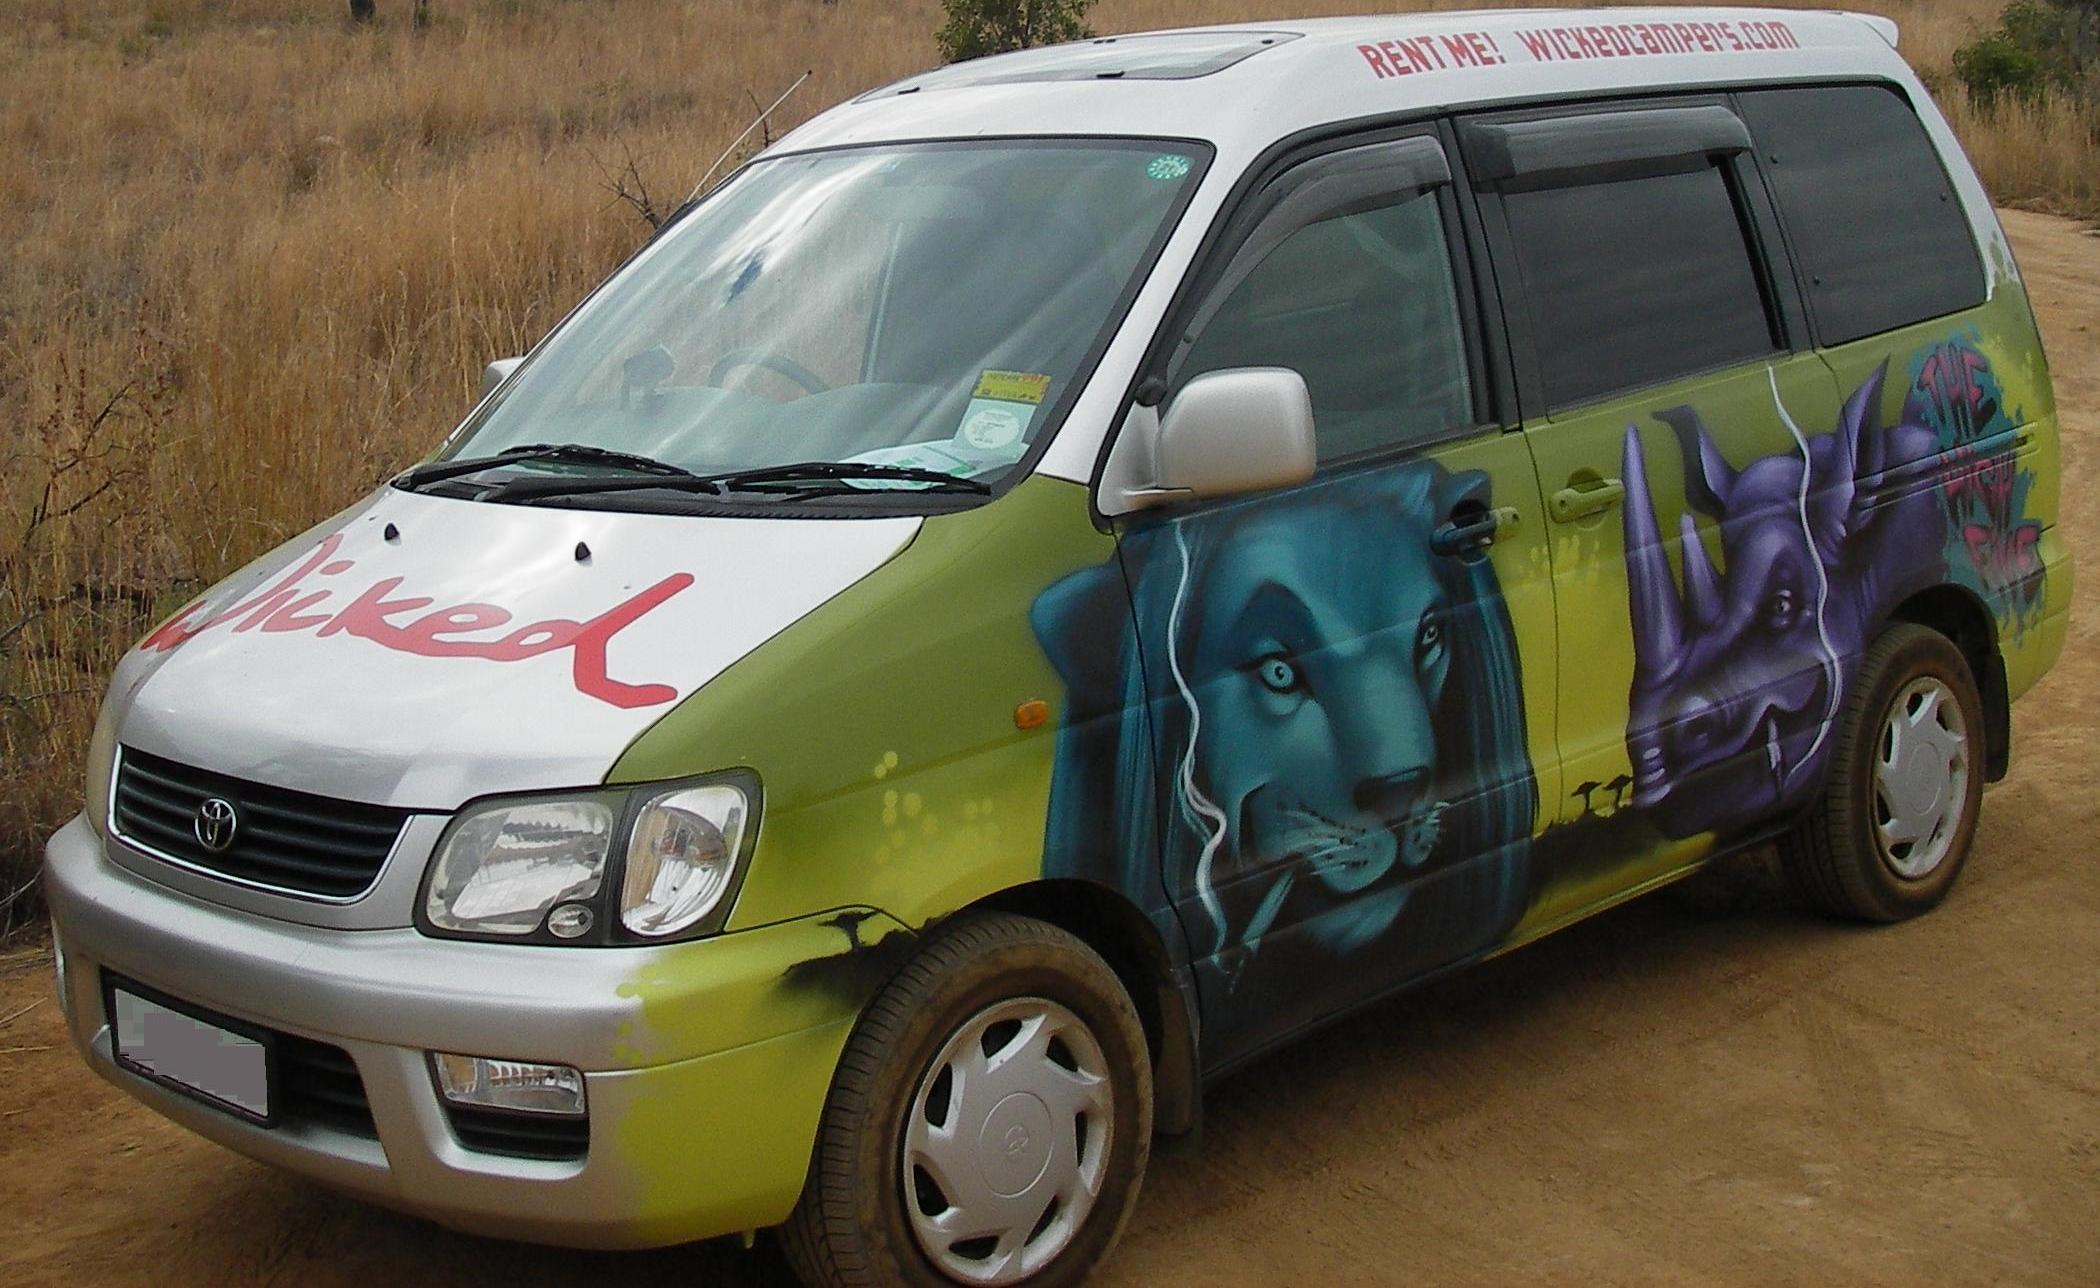 File:Toyota TownAce Wicked Campers.JPG - Wikimedia Commons